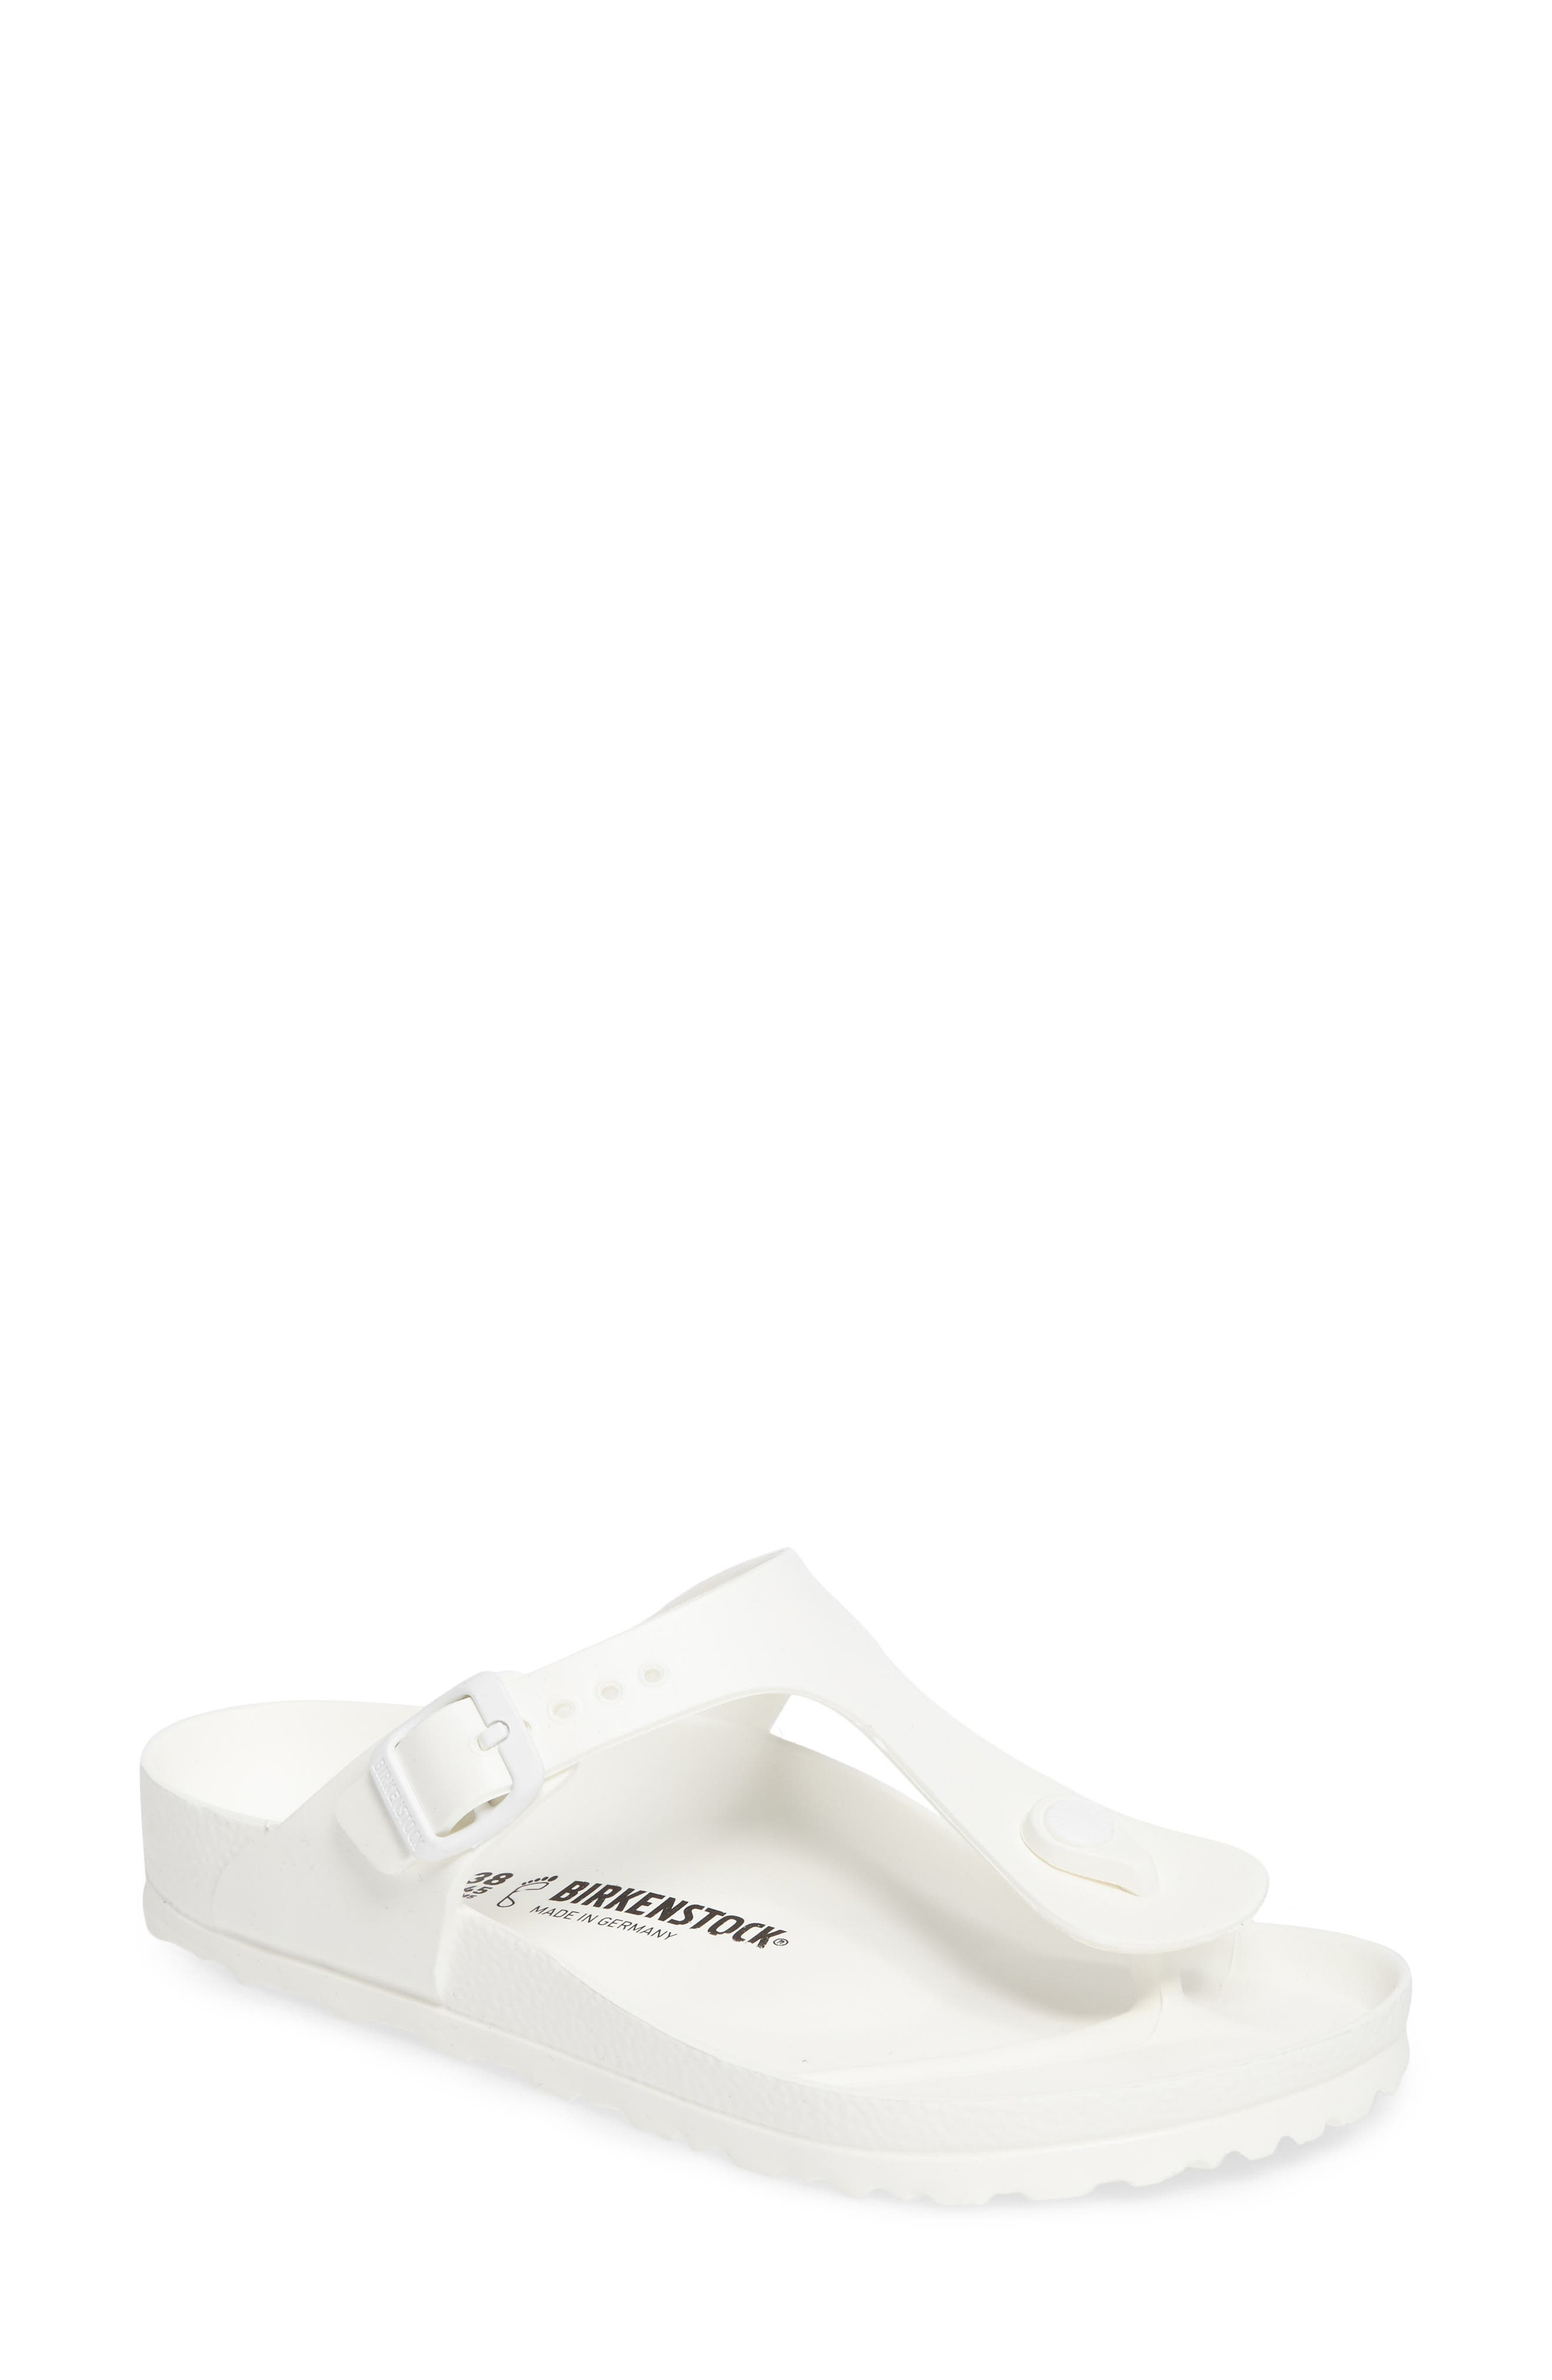 Essentials - Gizeh Flip Flop,                             Main thumbnail 1, color,                             WHITE